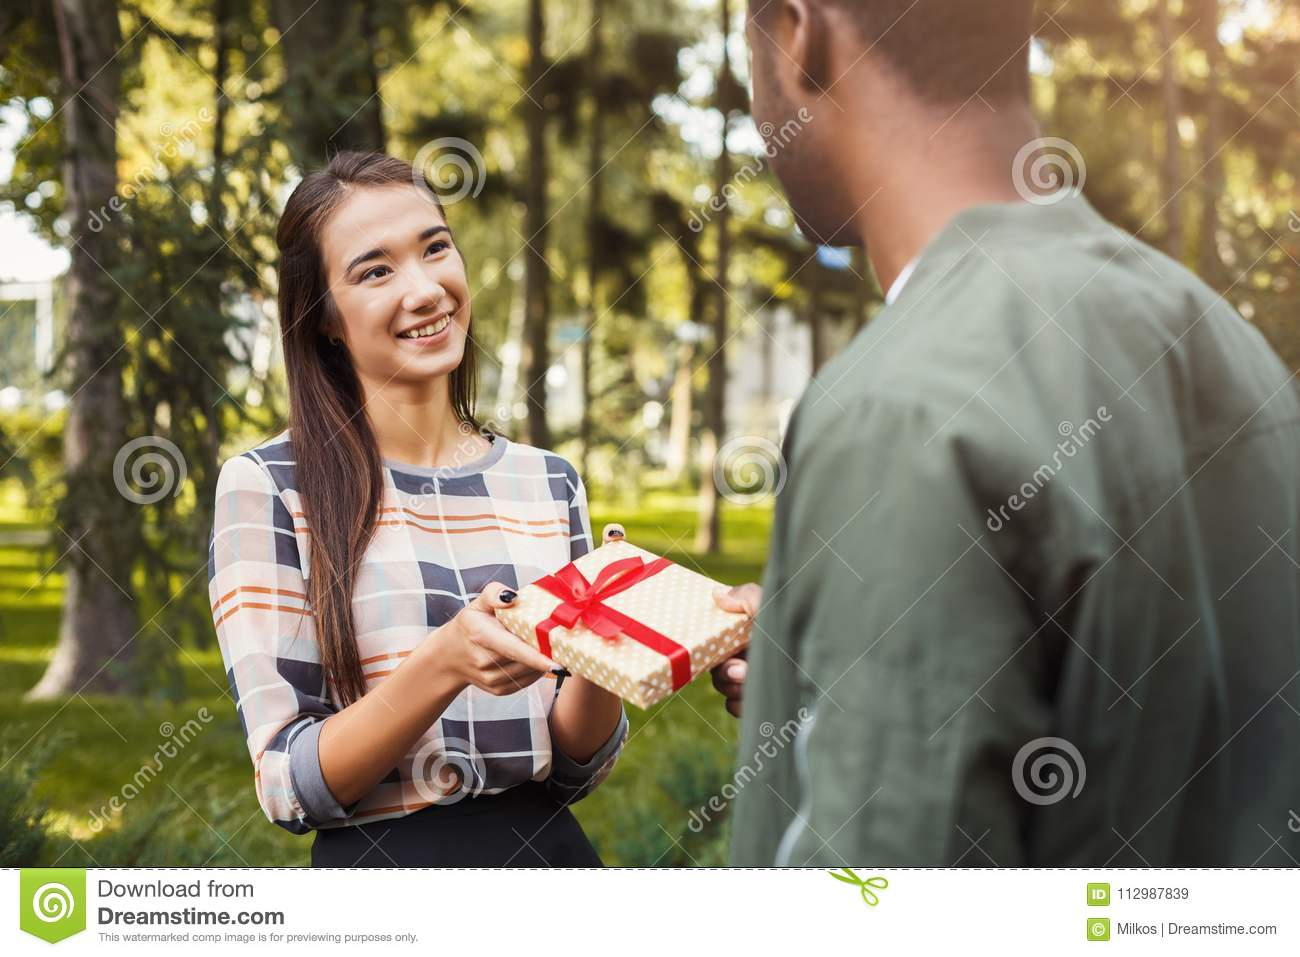 Man surprising his girlfriend with gift